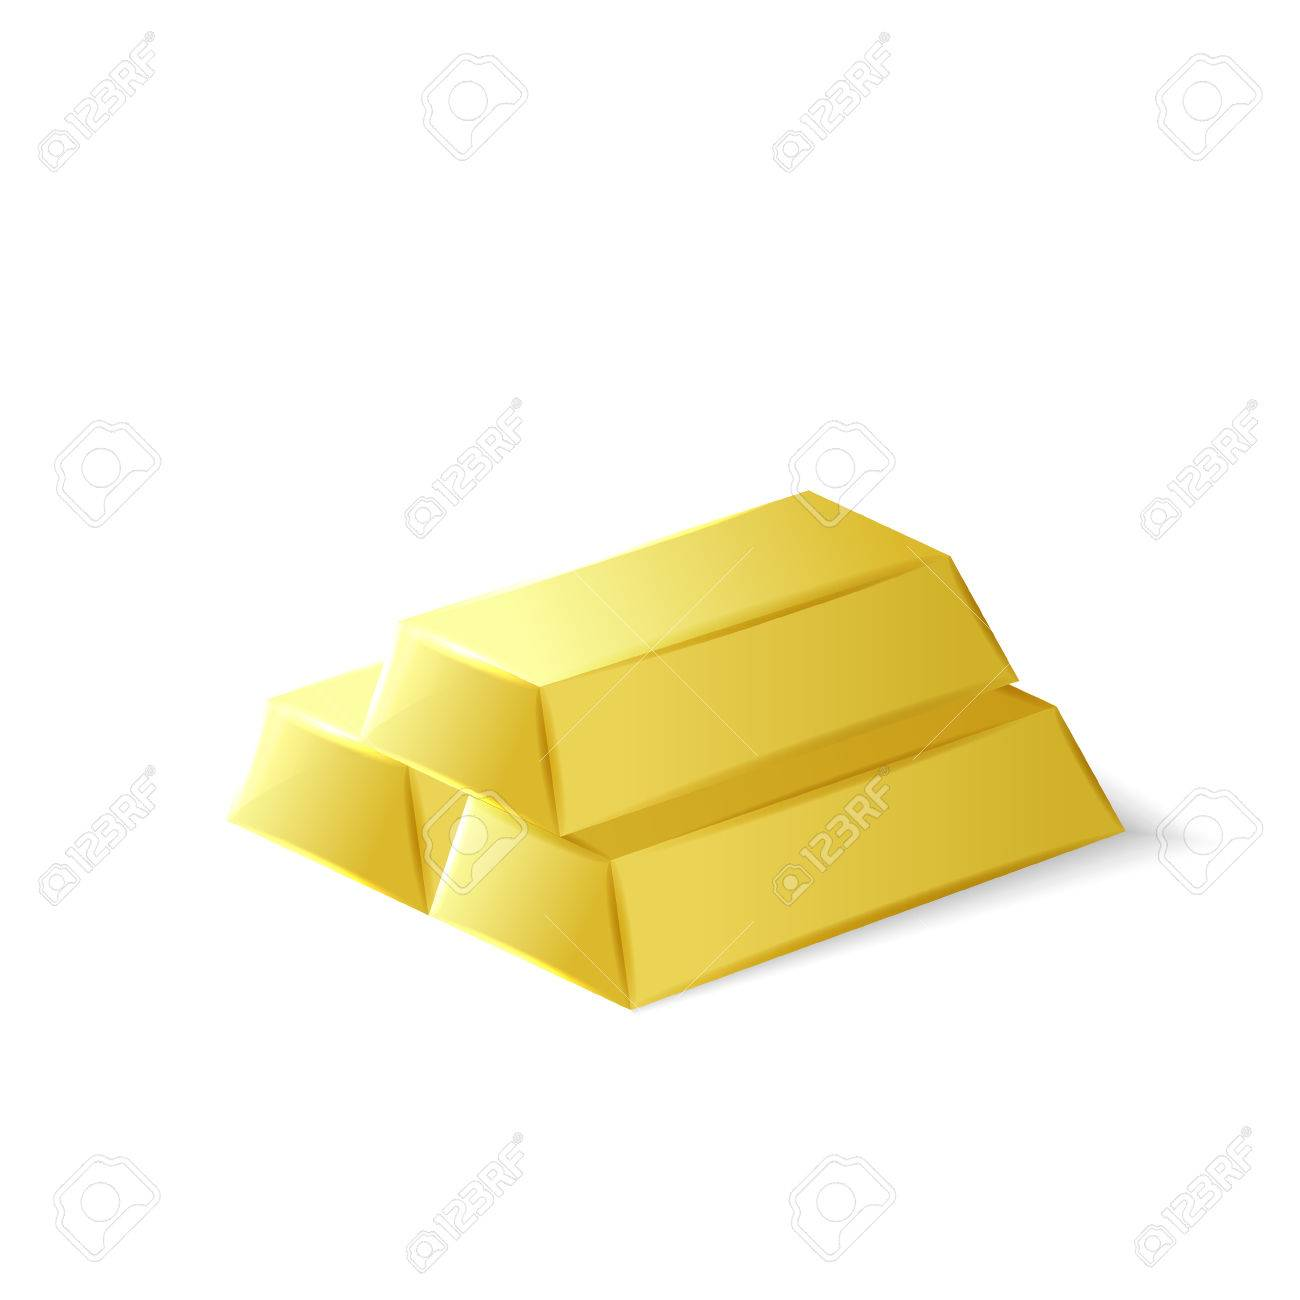 Gold bars, golden investment tool, 3d vector object isolated on white background - 47310495